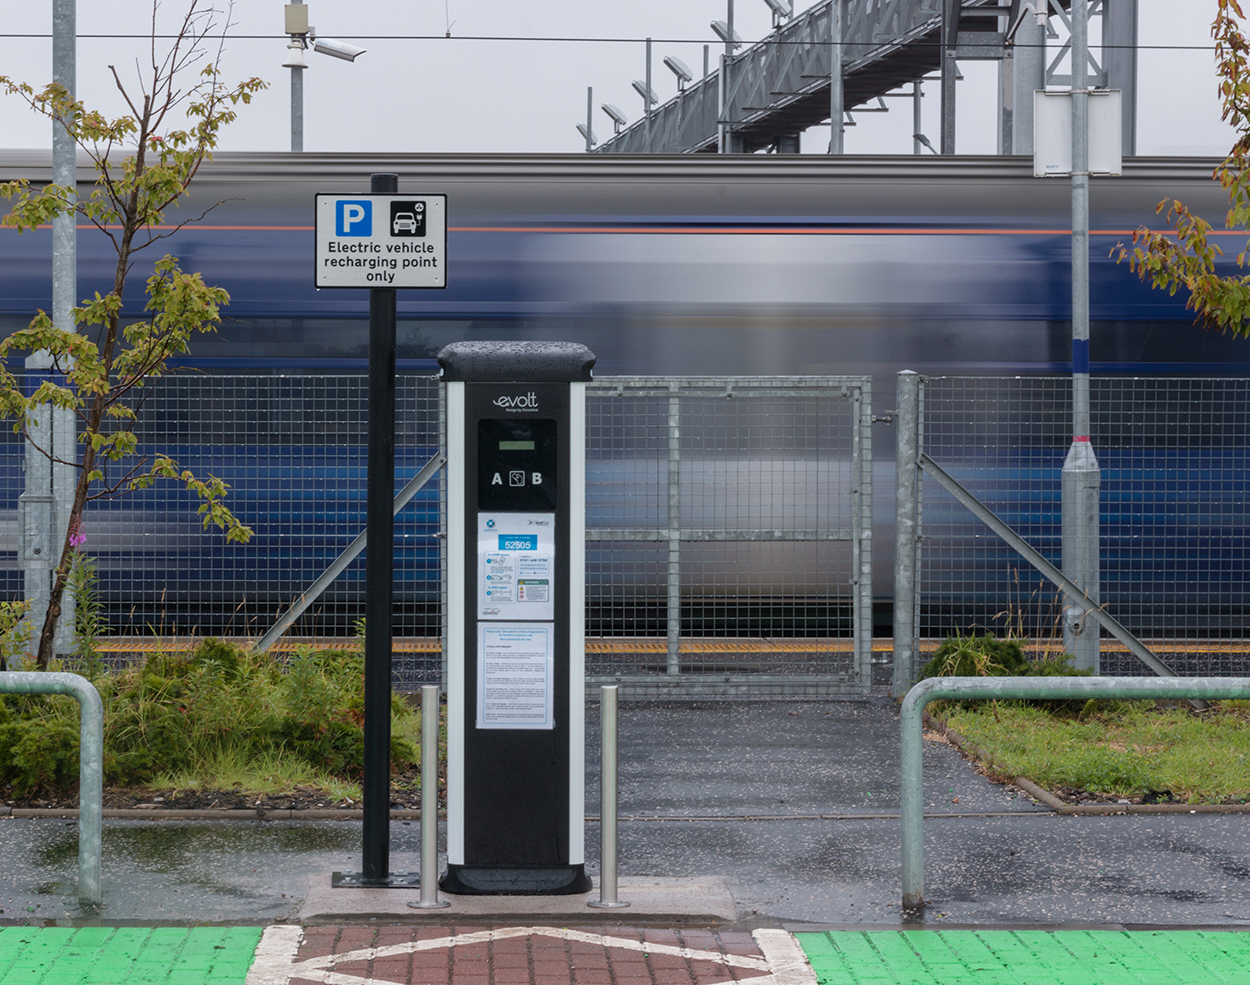 50 New Scotrail Charge Point Locations Revealed